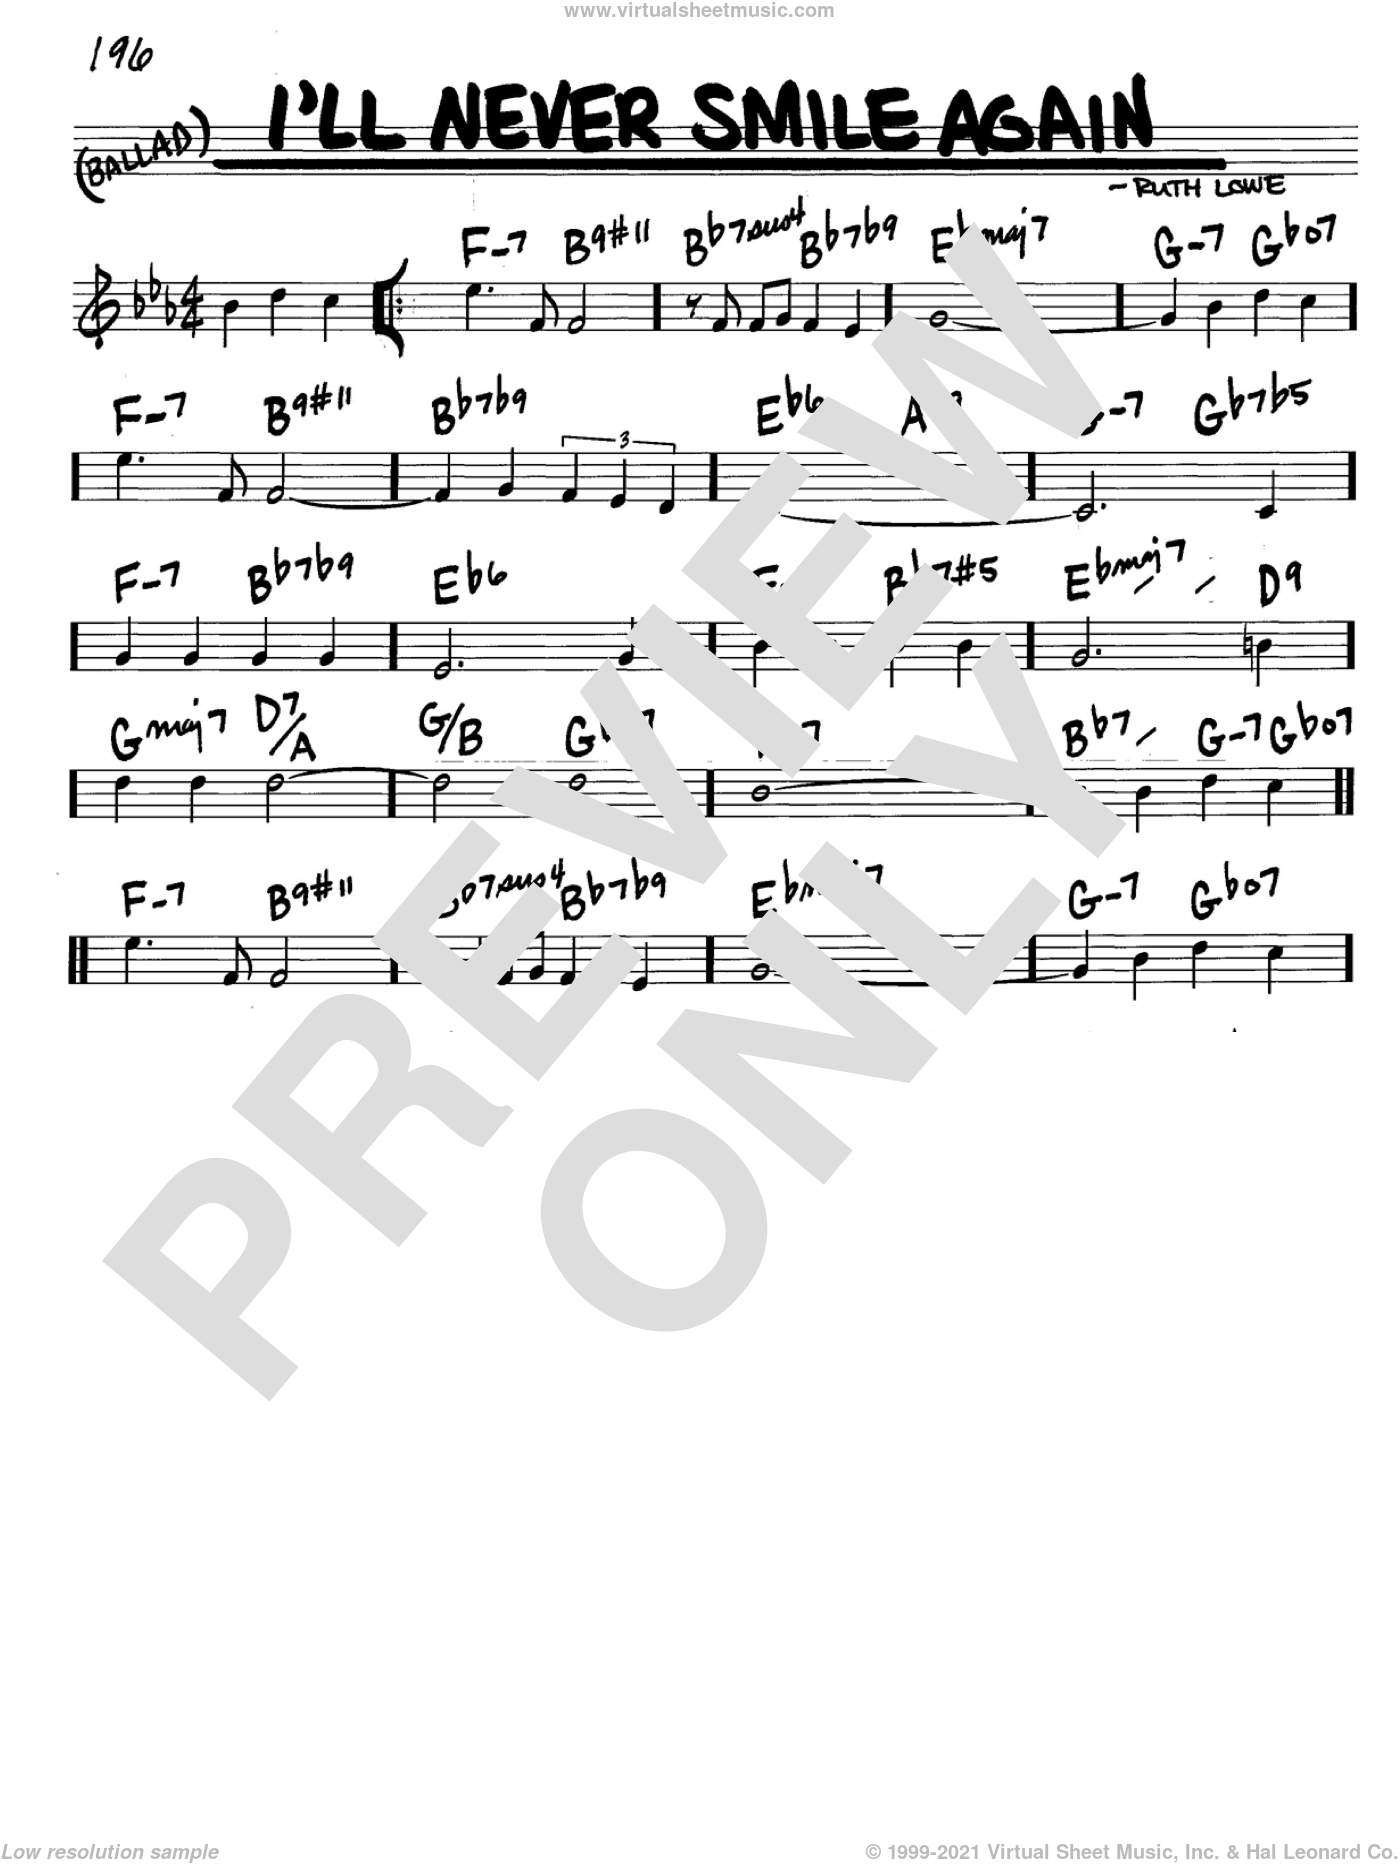 I'll Never Smile Again sheet music for voice and other instruments (C) by Ruth Lowe